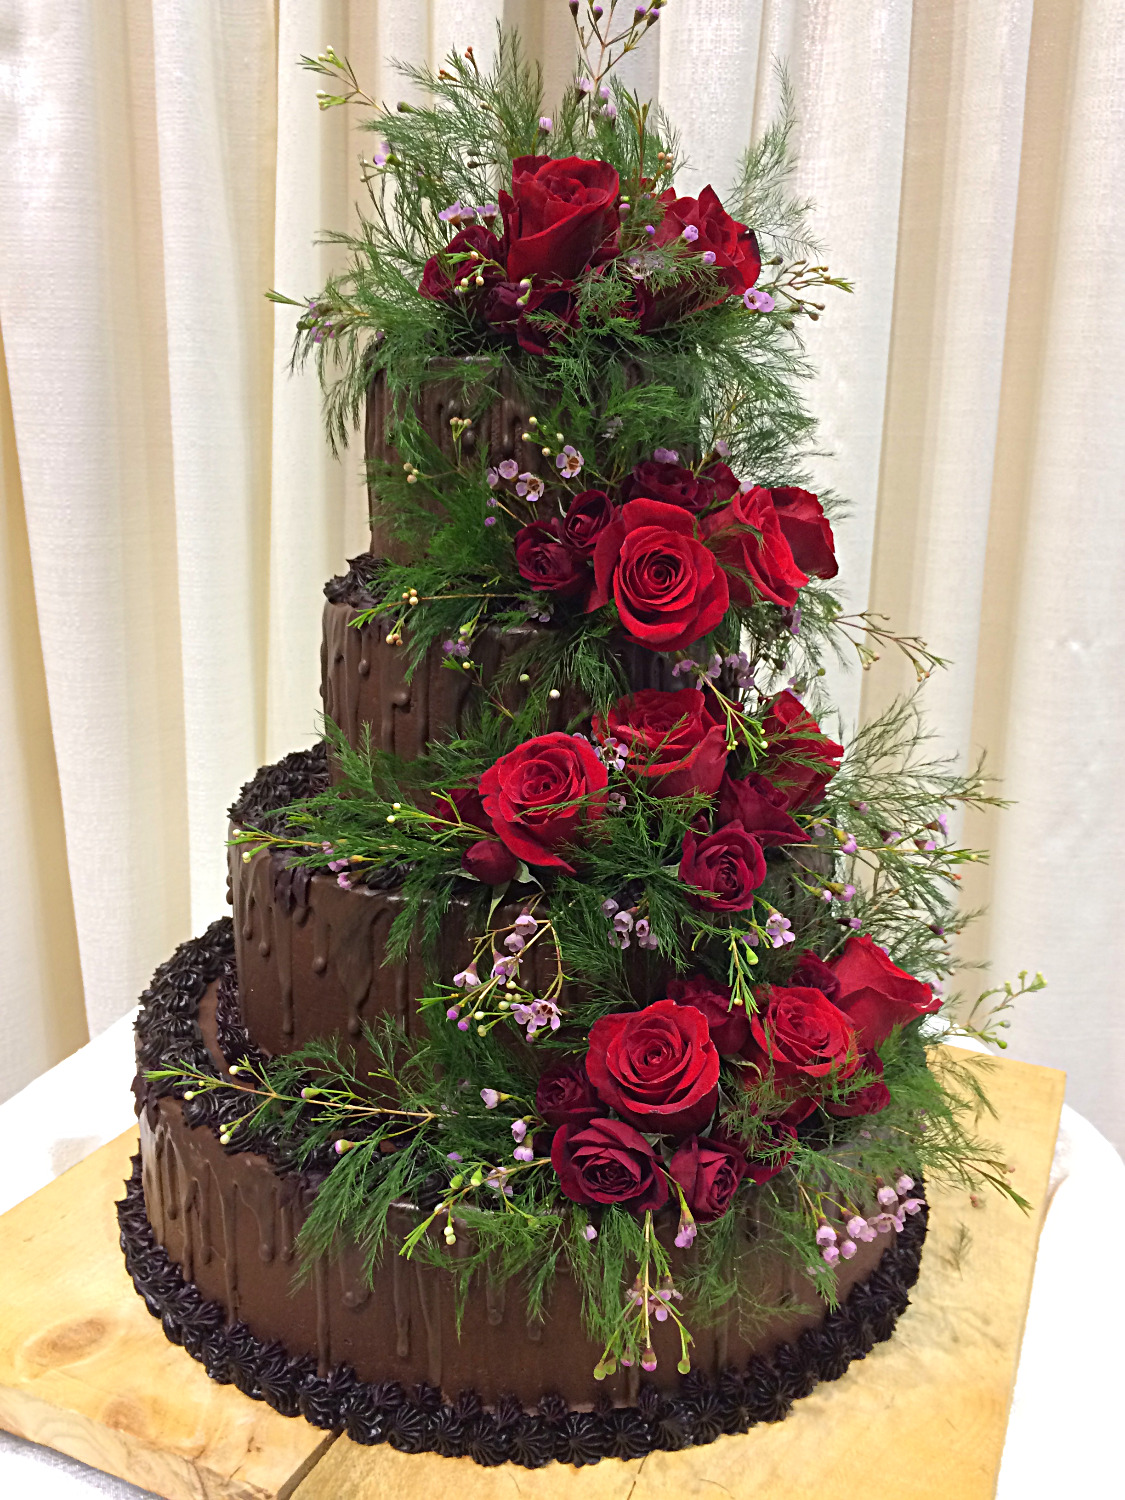 A chocolate Winter wedding